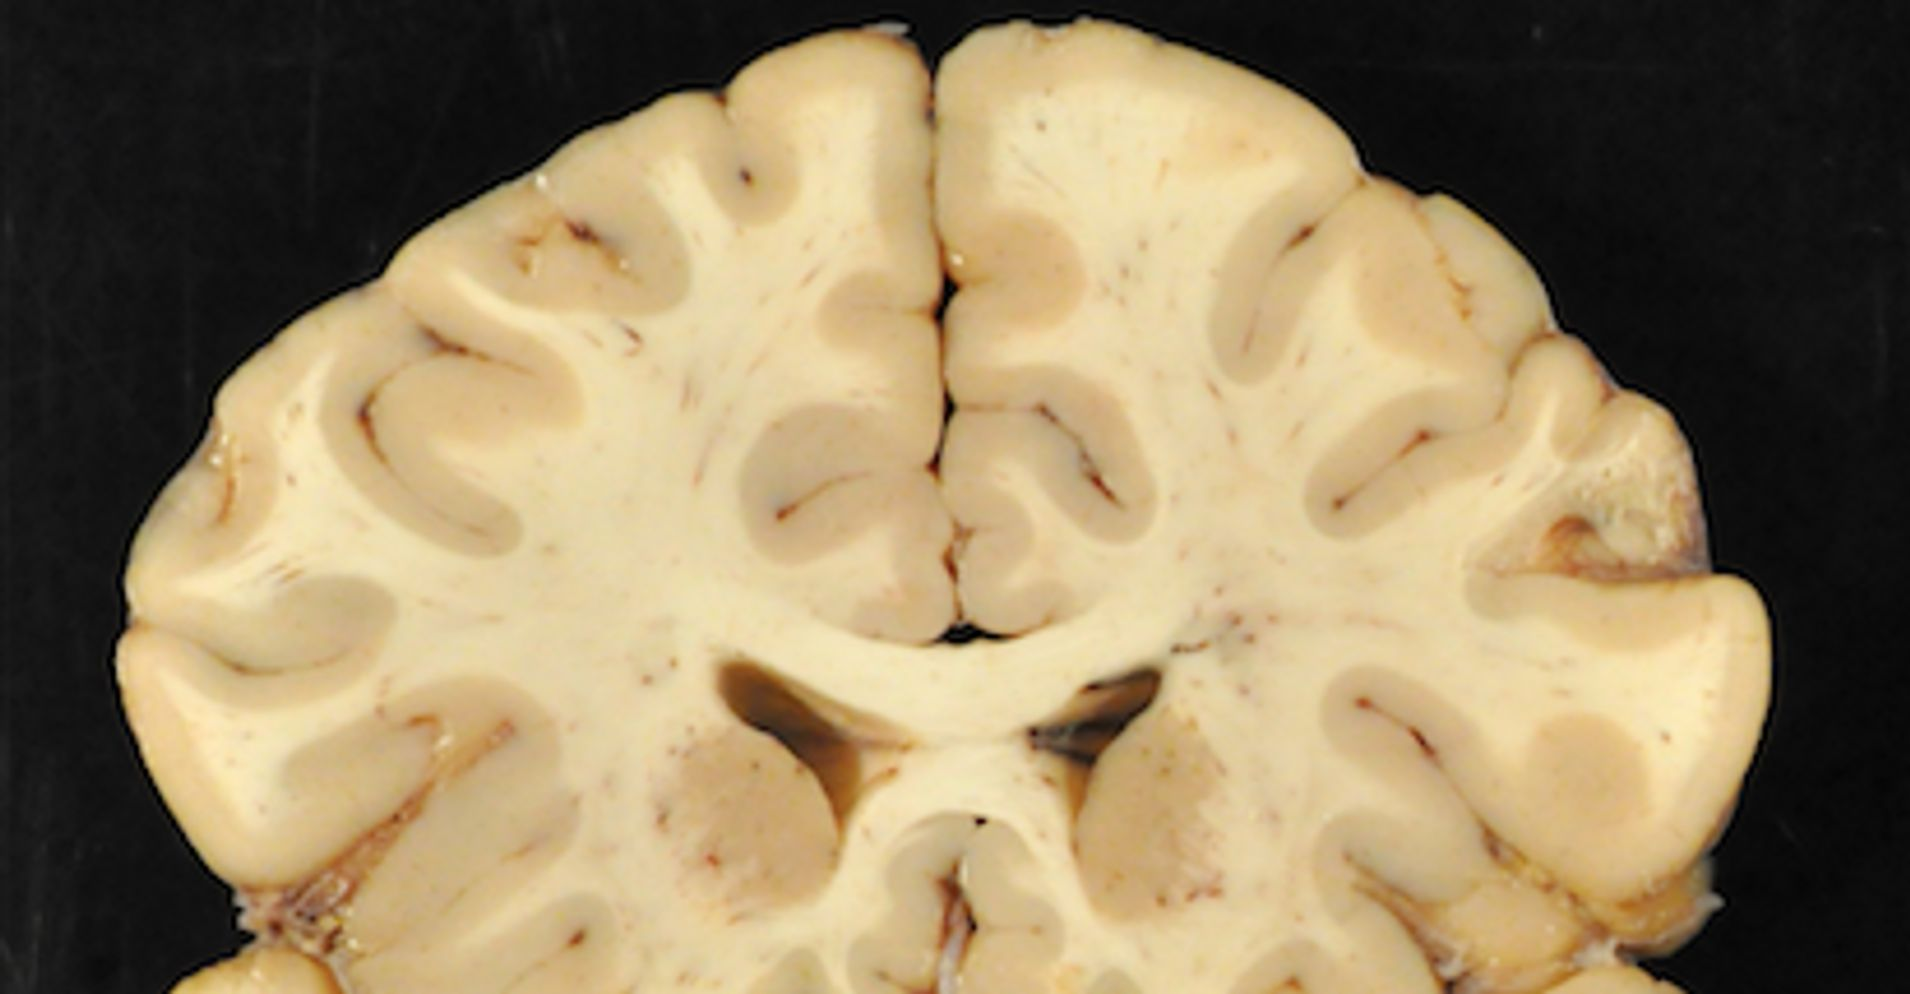 99 Percent Of Studied NFL Brains Diagnosed With CTE, Researchers Say